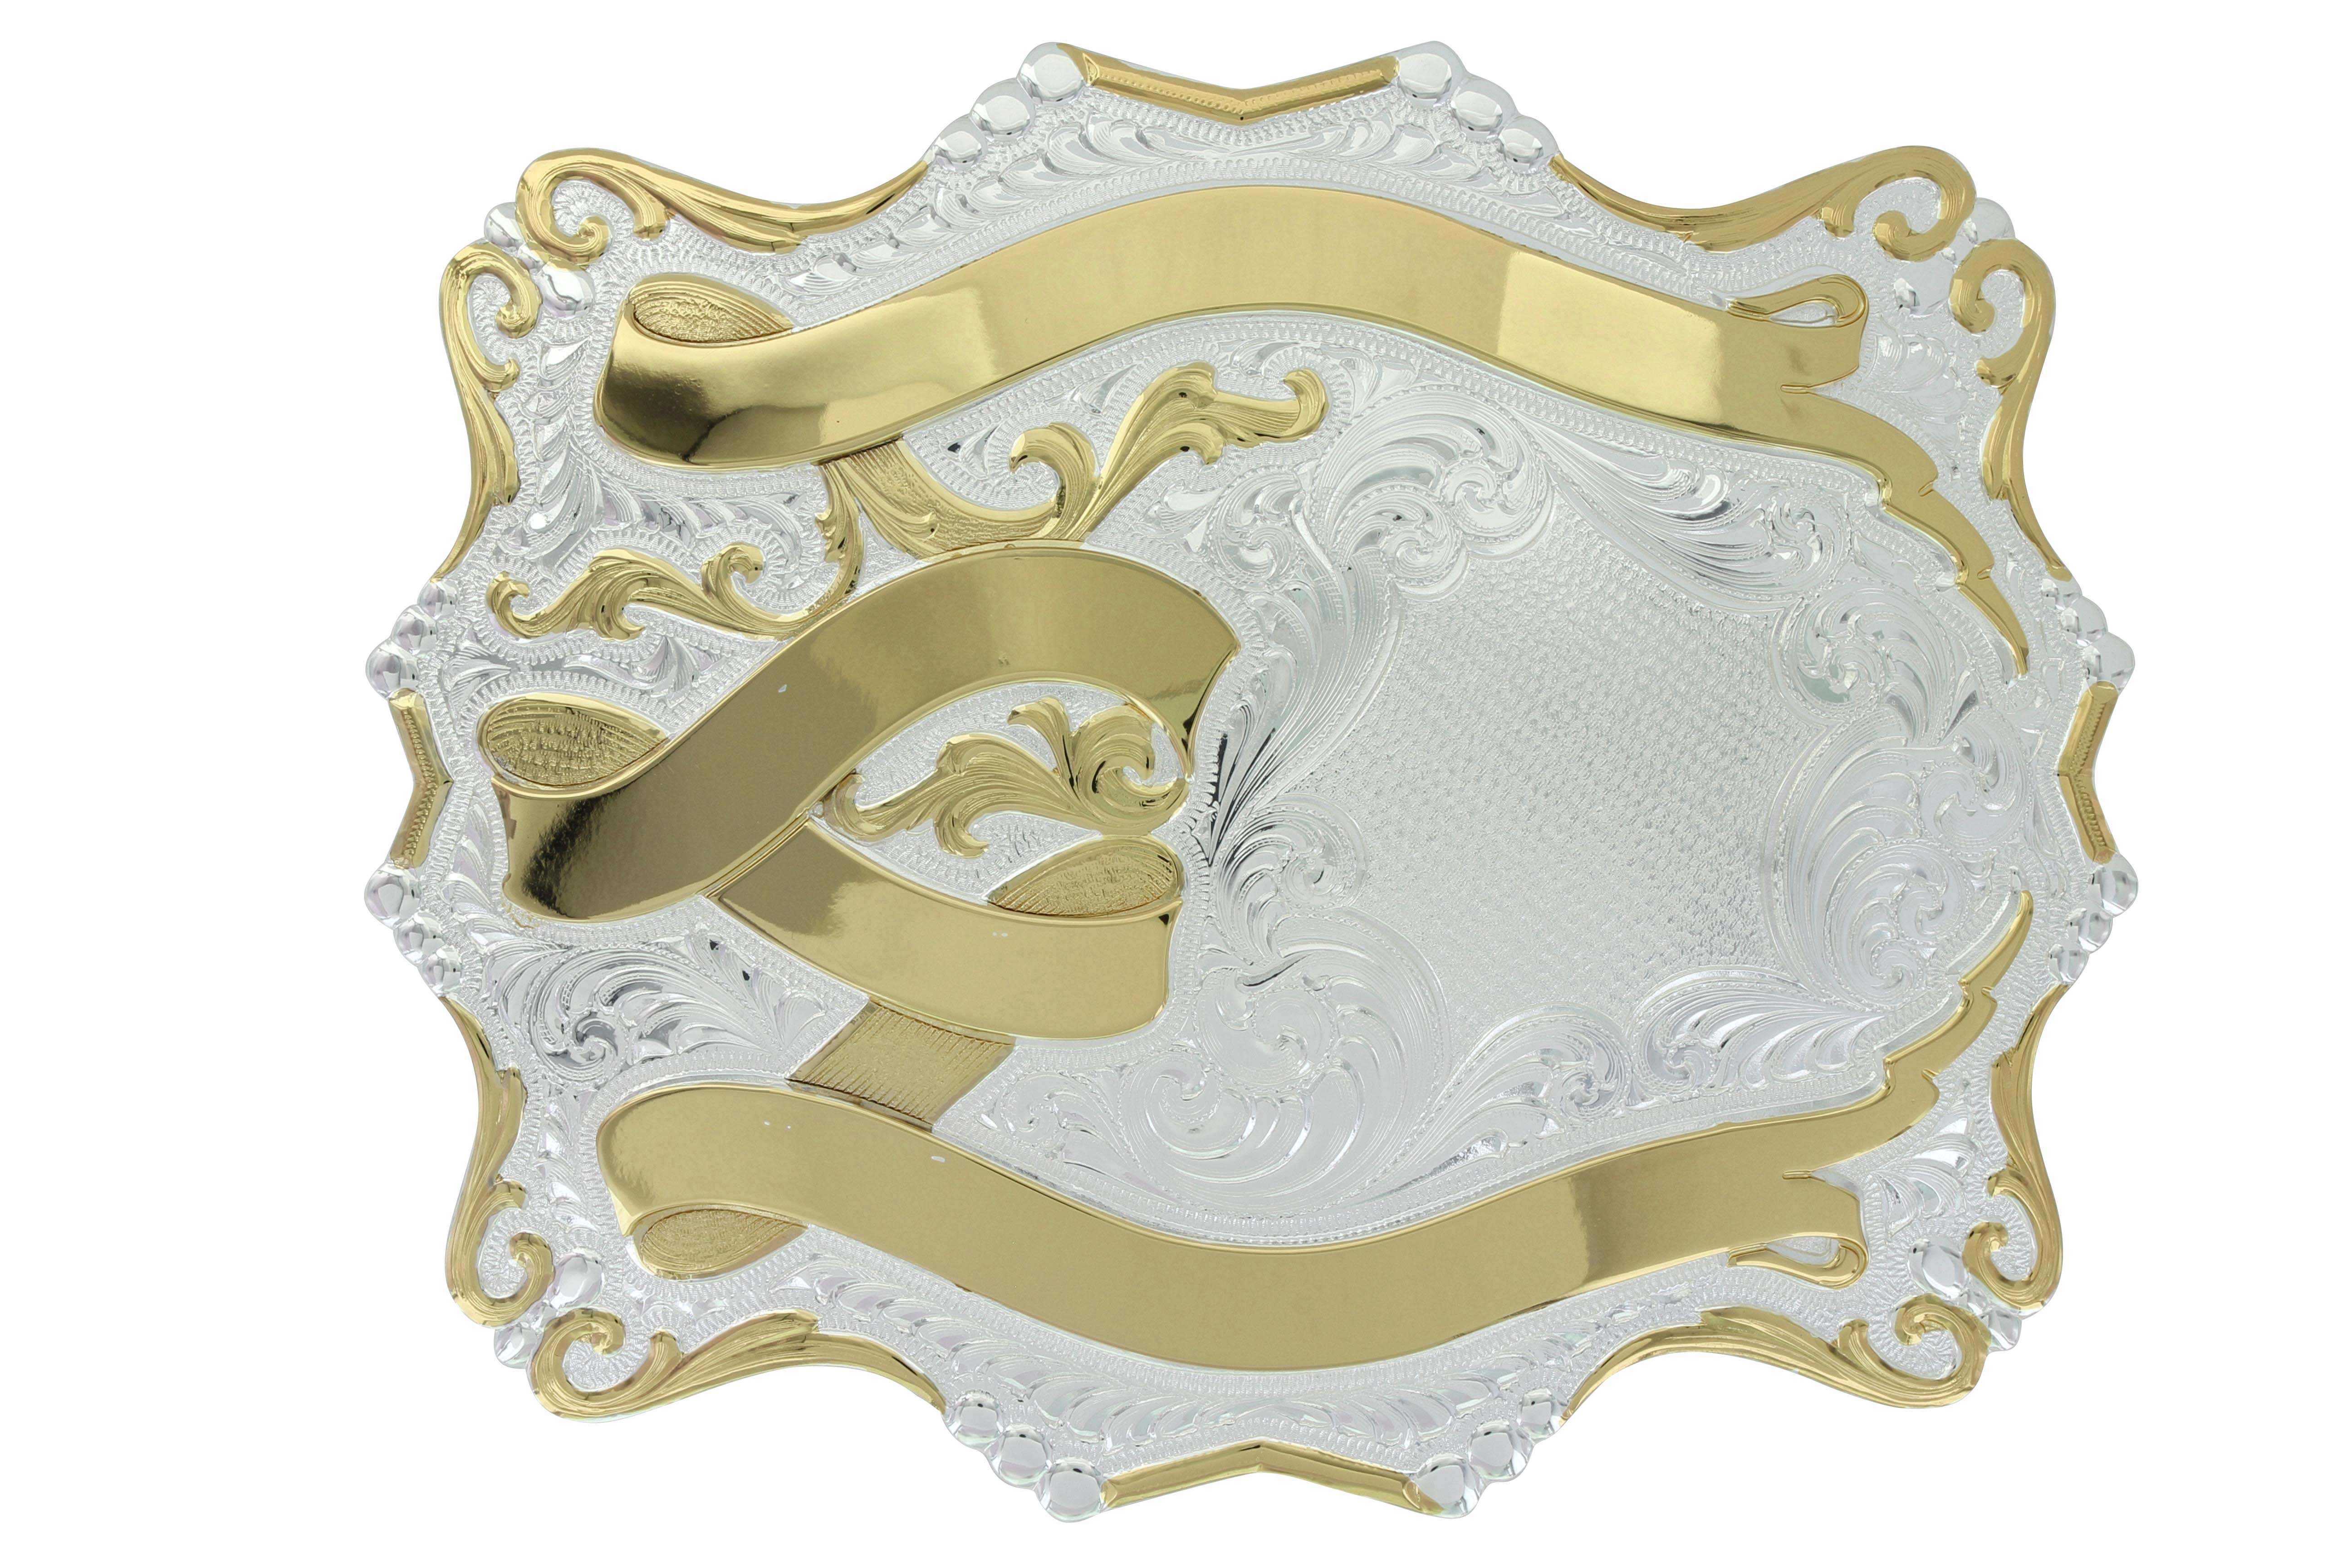 Townsend Trophy Buckle (3.75